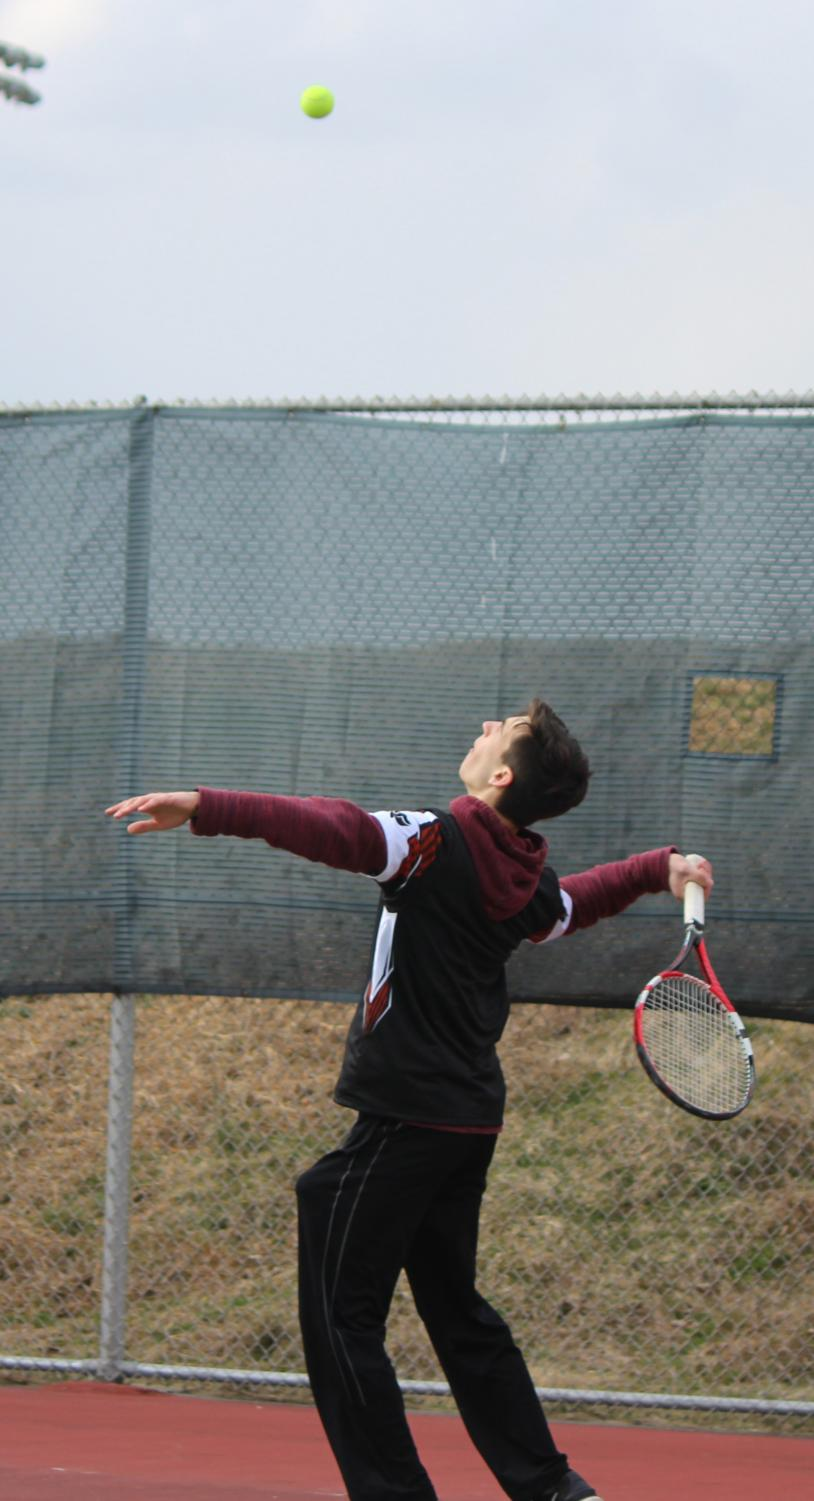 Andrew+serving+first+serve+of+the+match